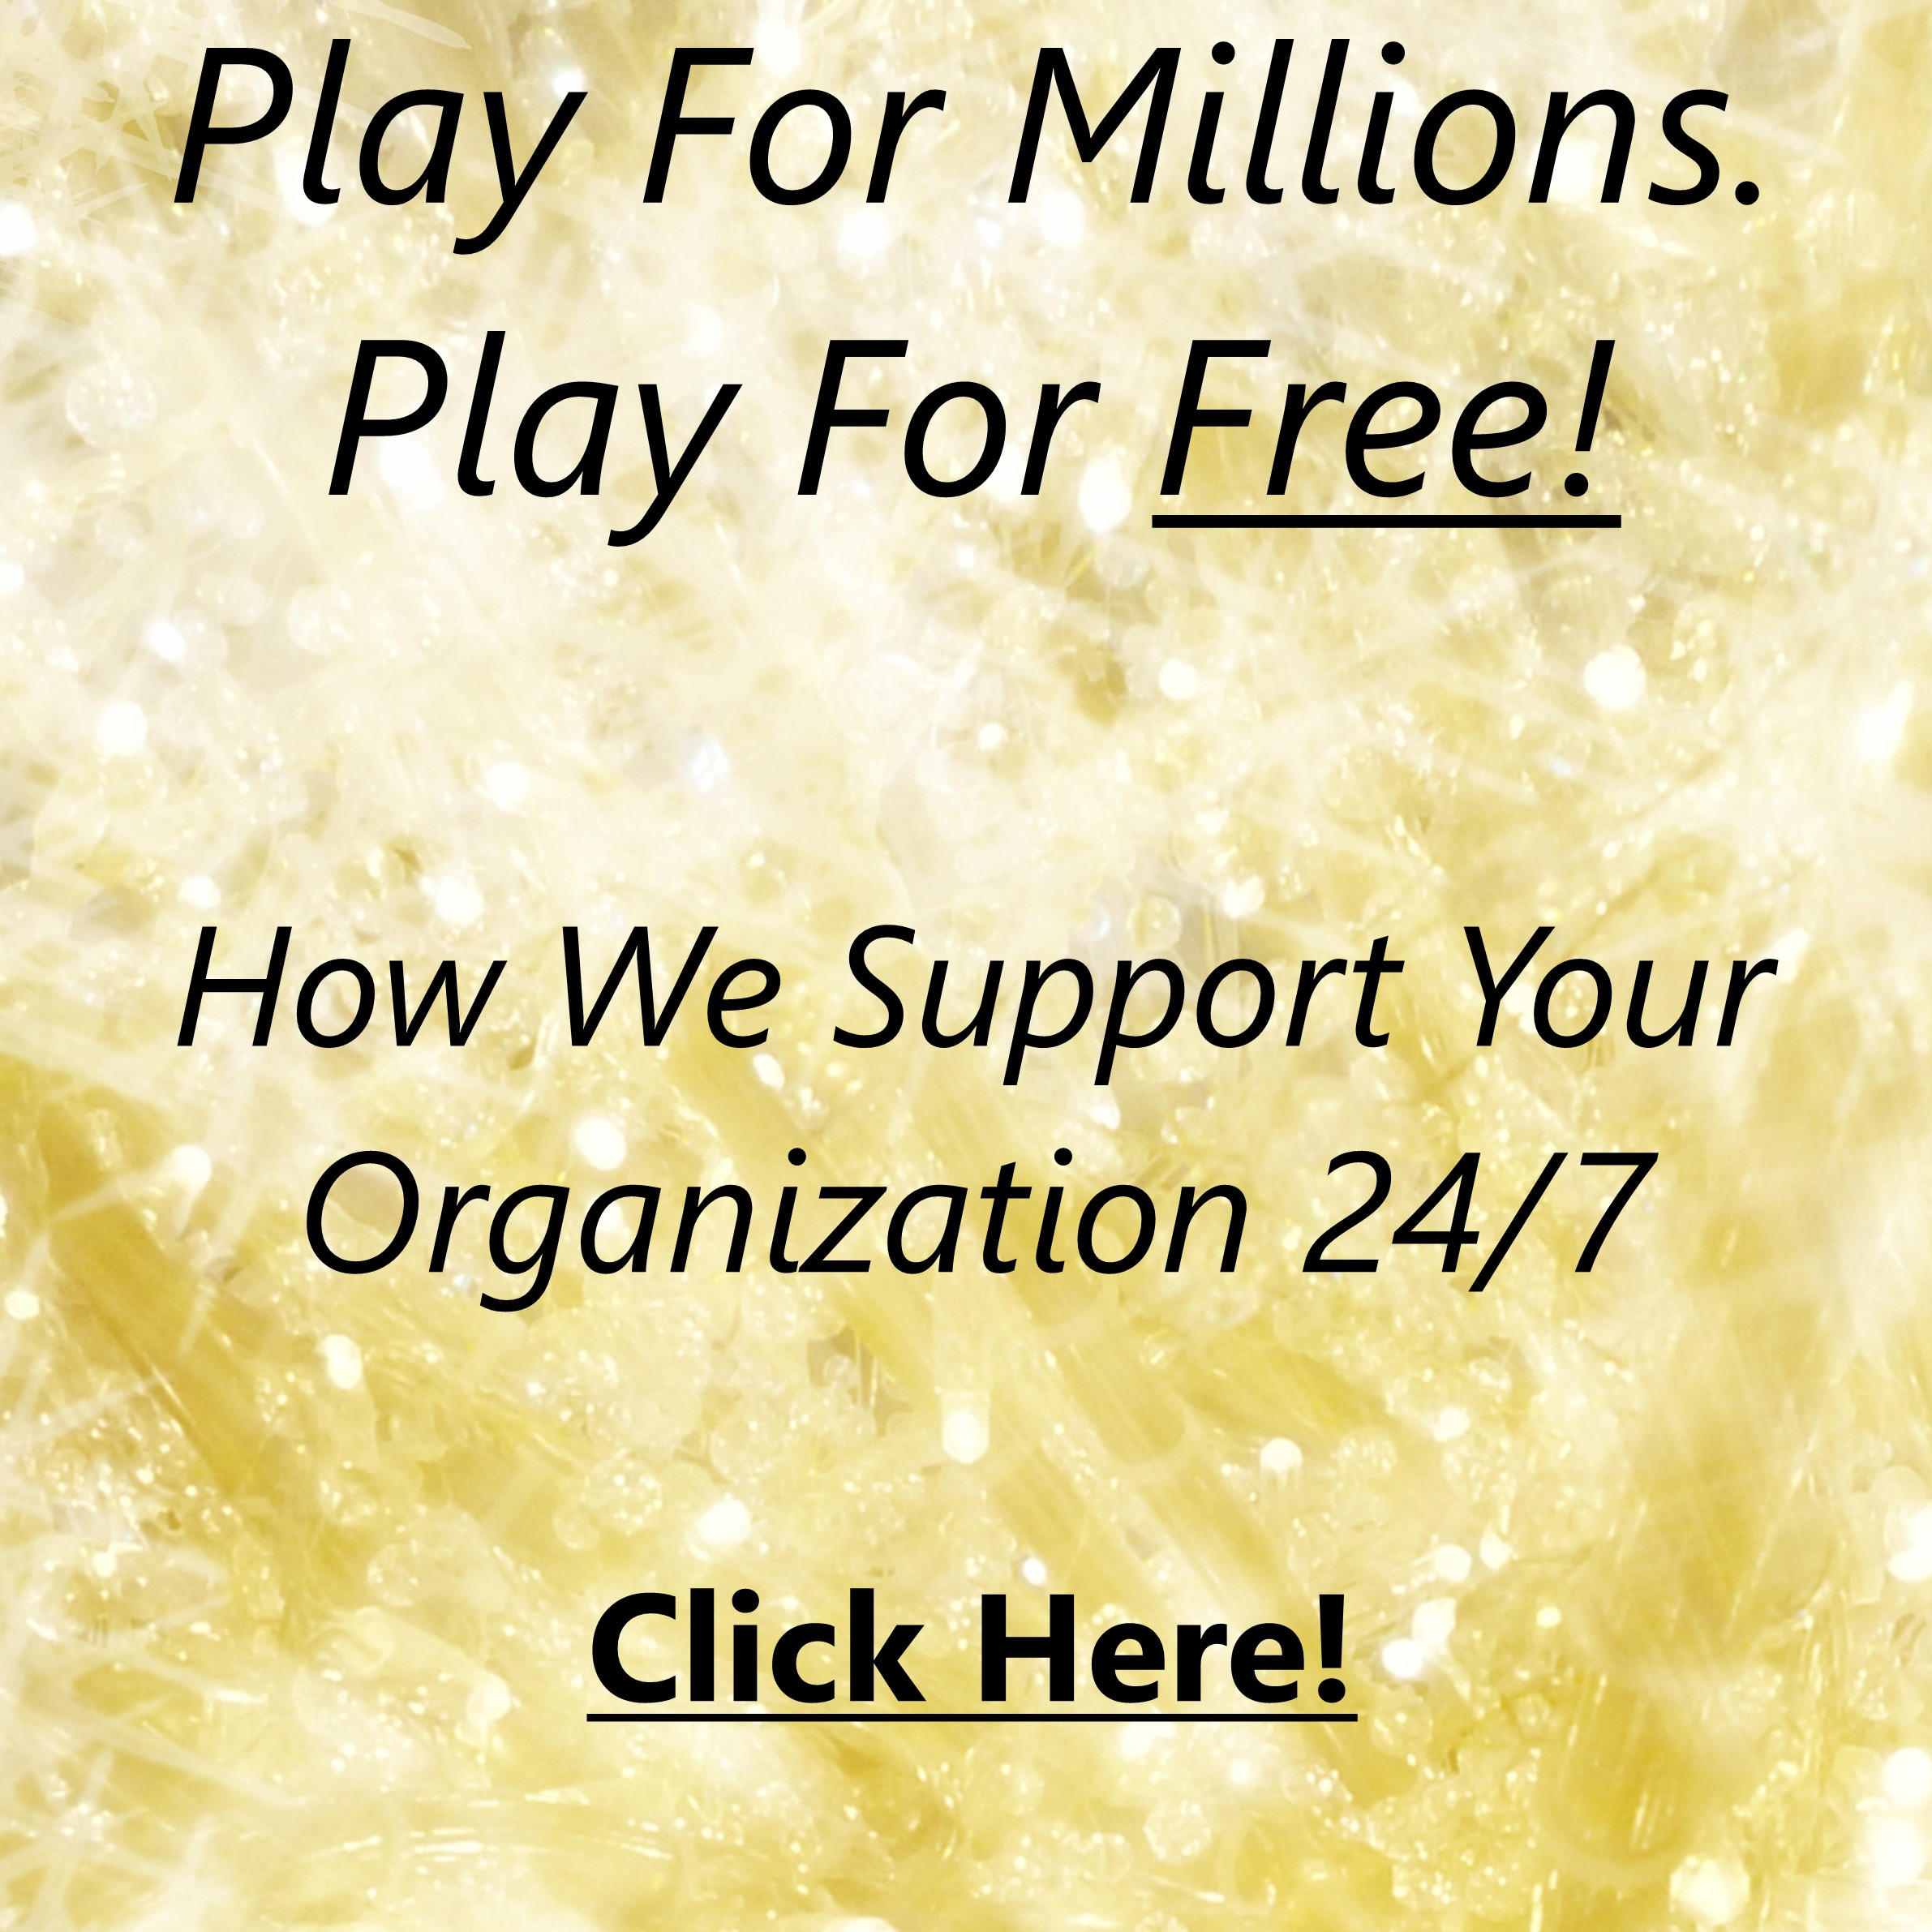 We Support Your Organization 24/7